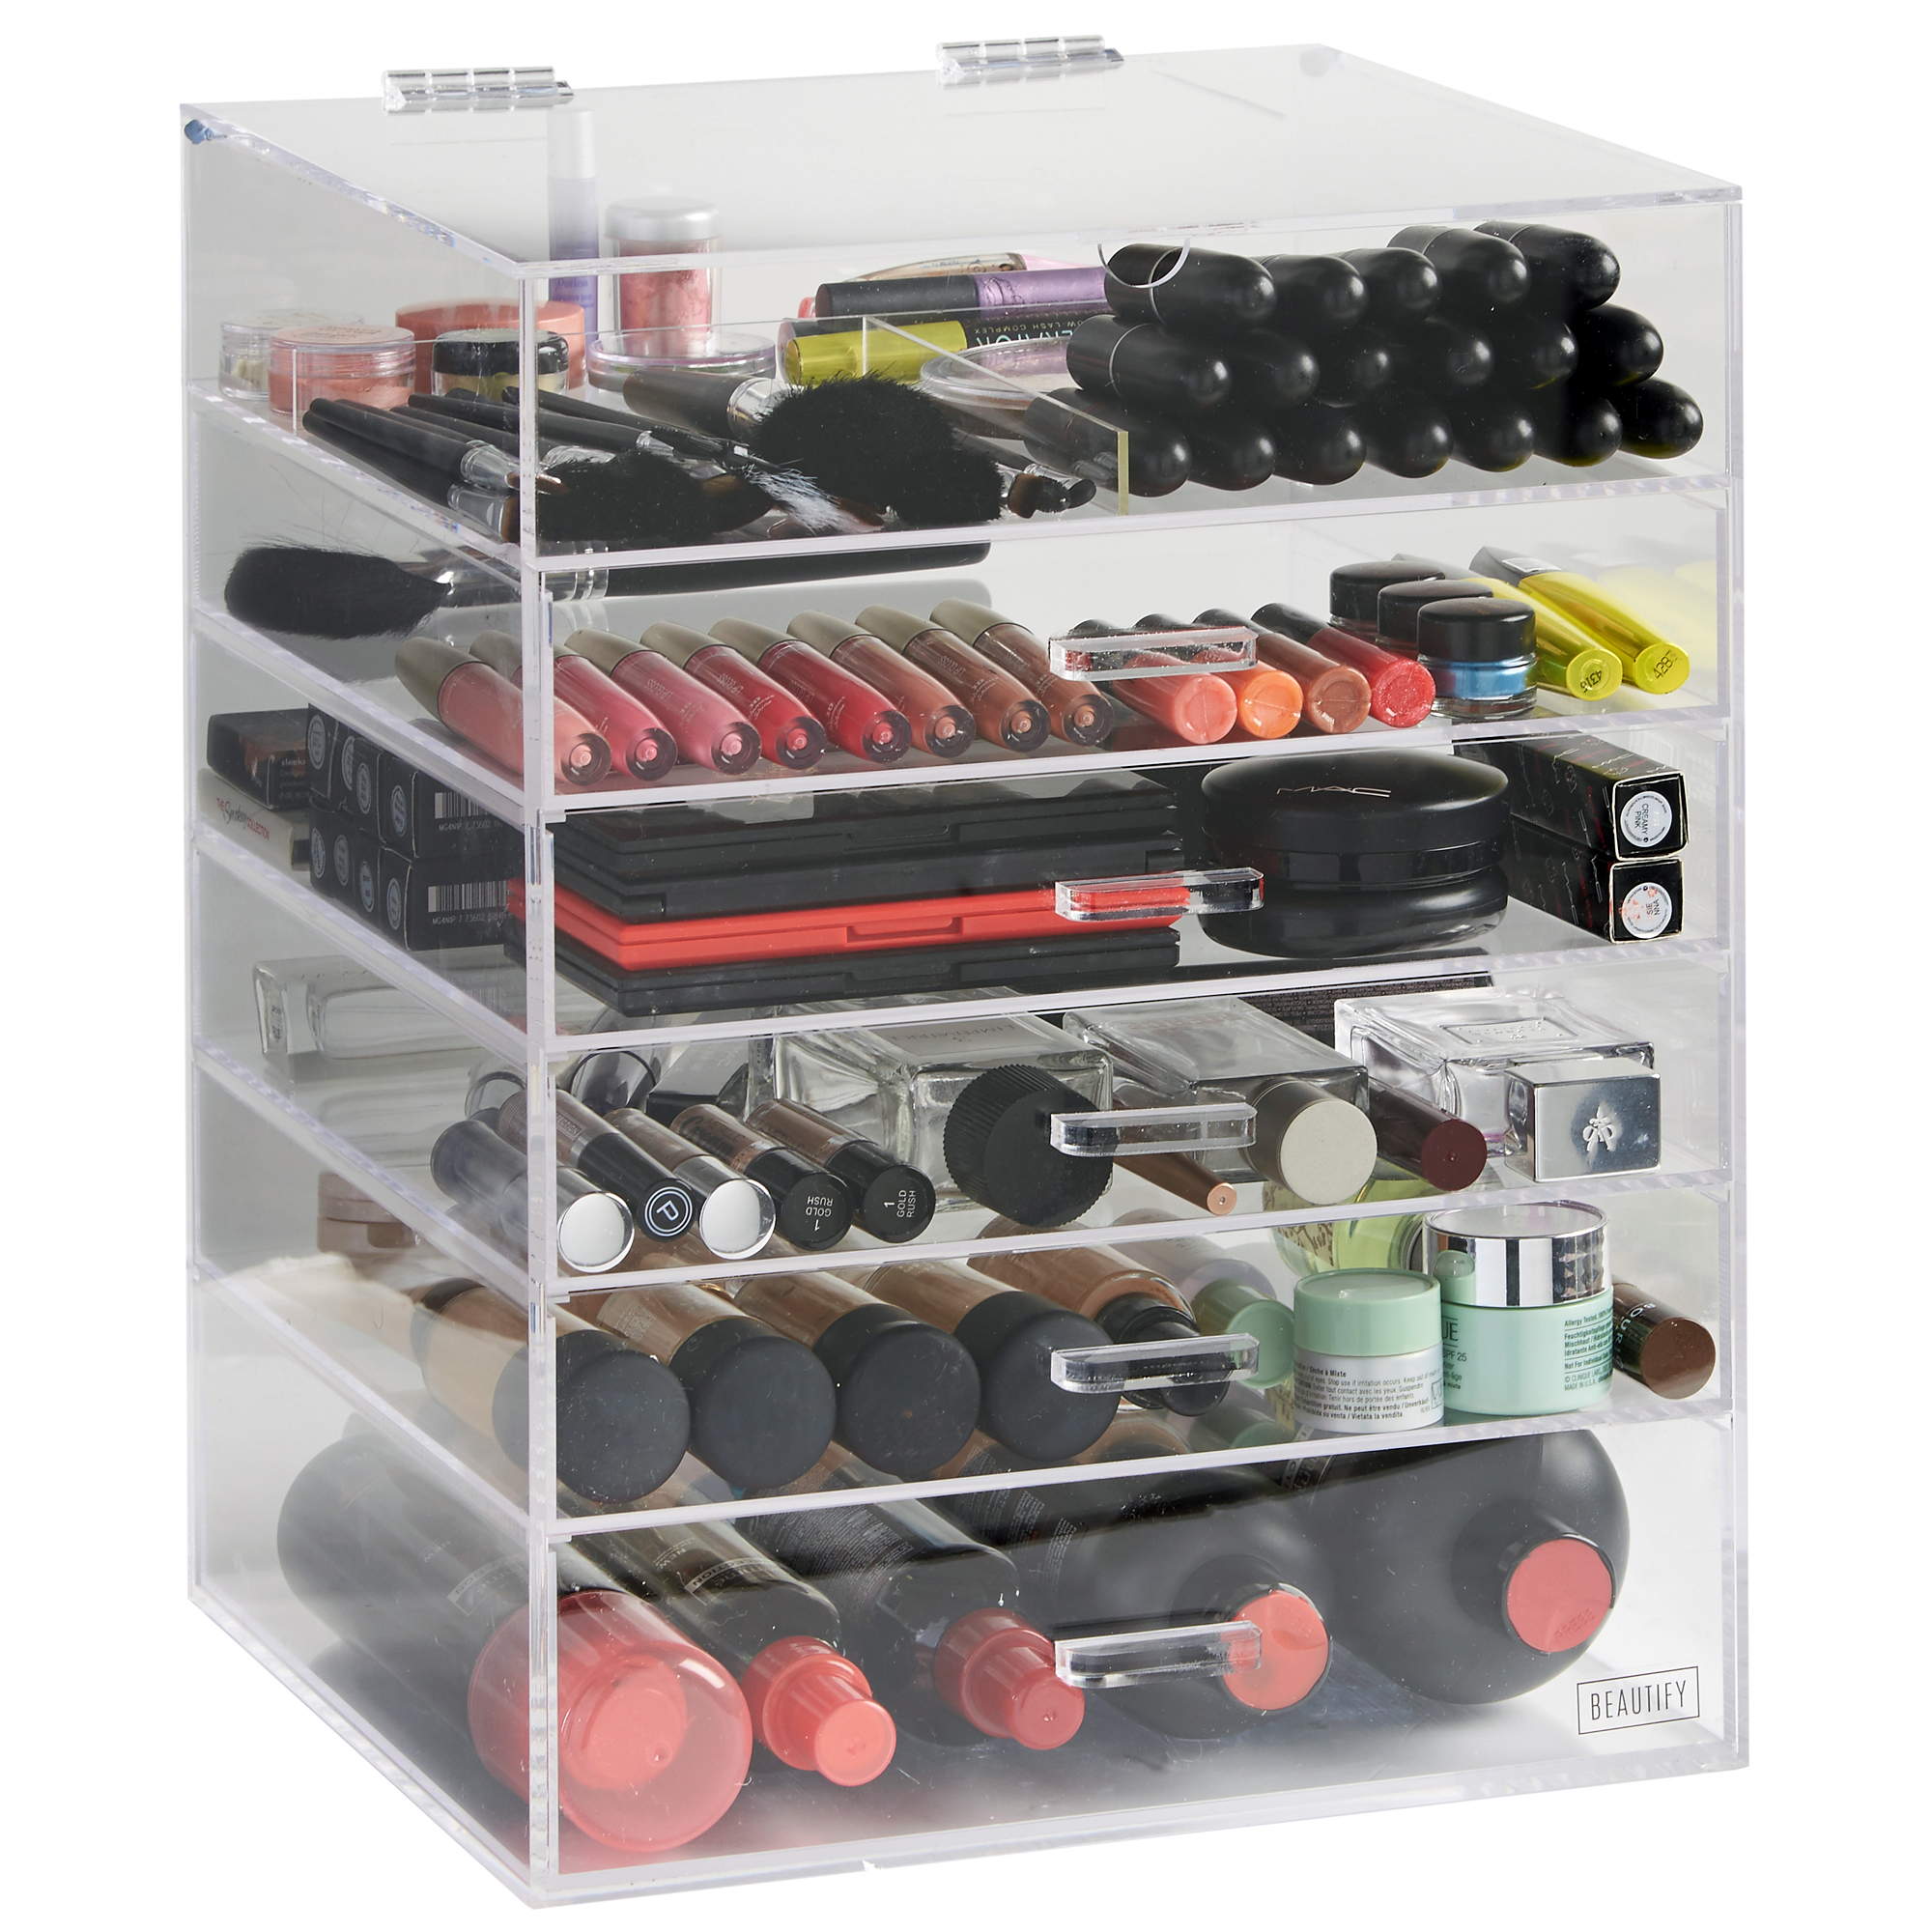 Sentinel Beautify Large 6 Tier Clear Acrylic Cosmetic Makeup Organiser Case  - 5 Drawers